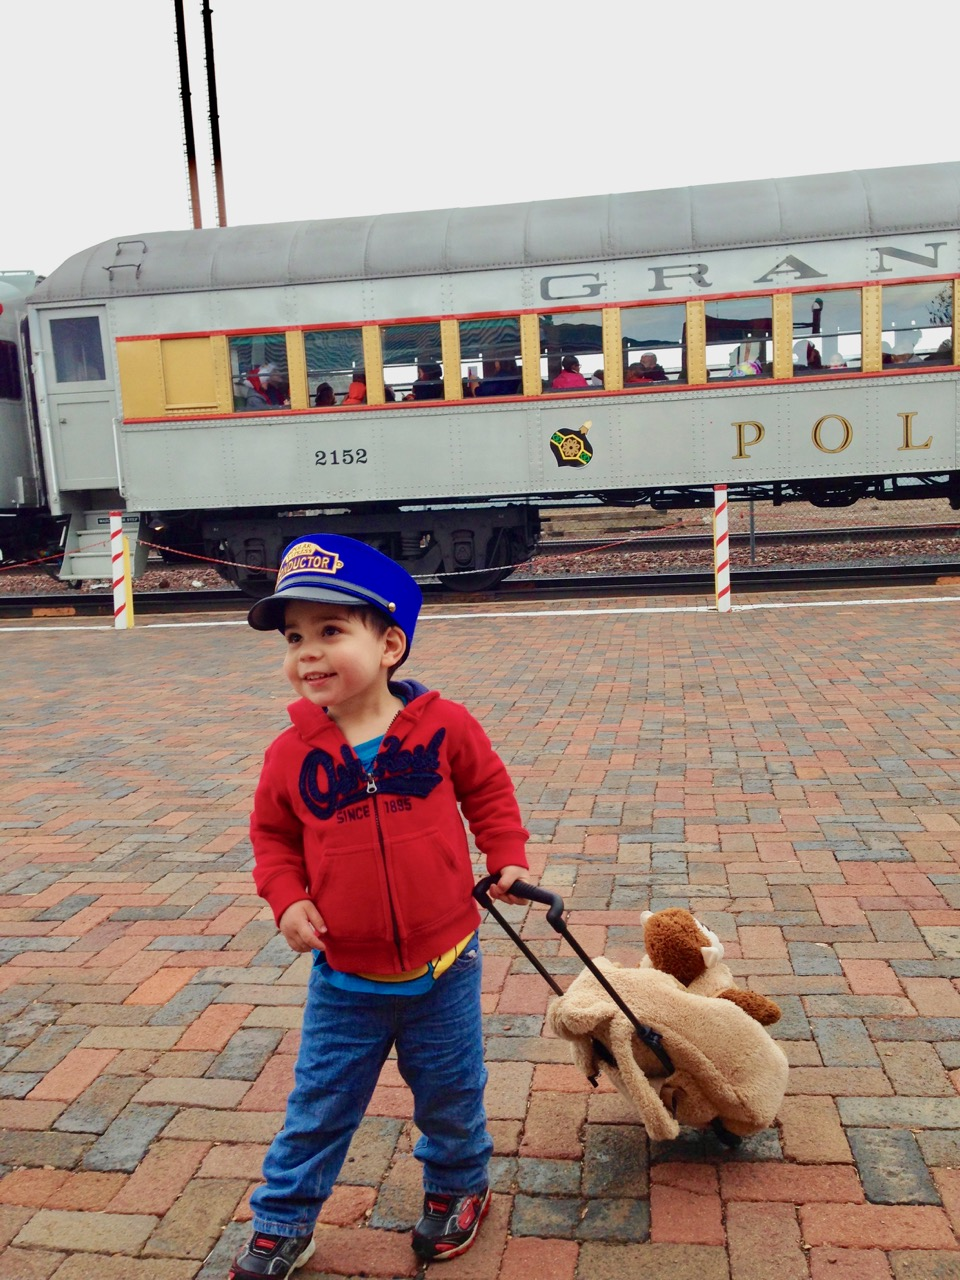 This is one train you won't want to miss. There are several reasons why you should ride the Polar Express in Arizona! Photo by Multidimensional TravelingMom, Kristi Mehes.